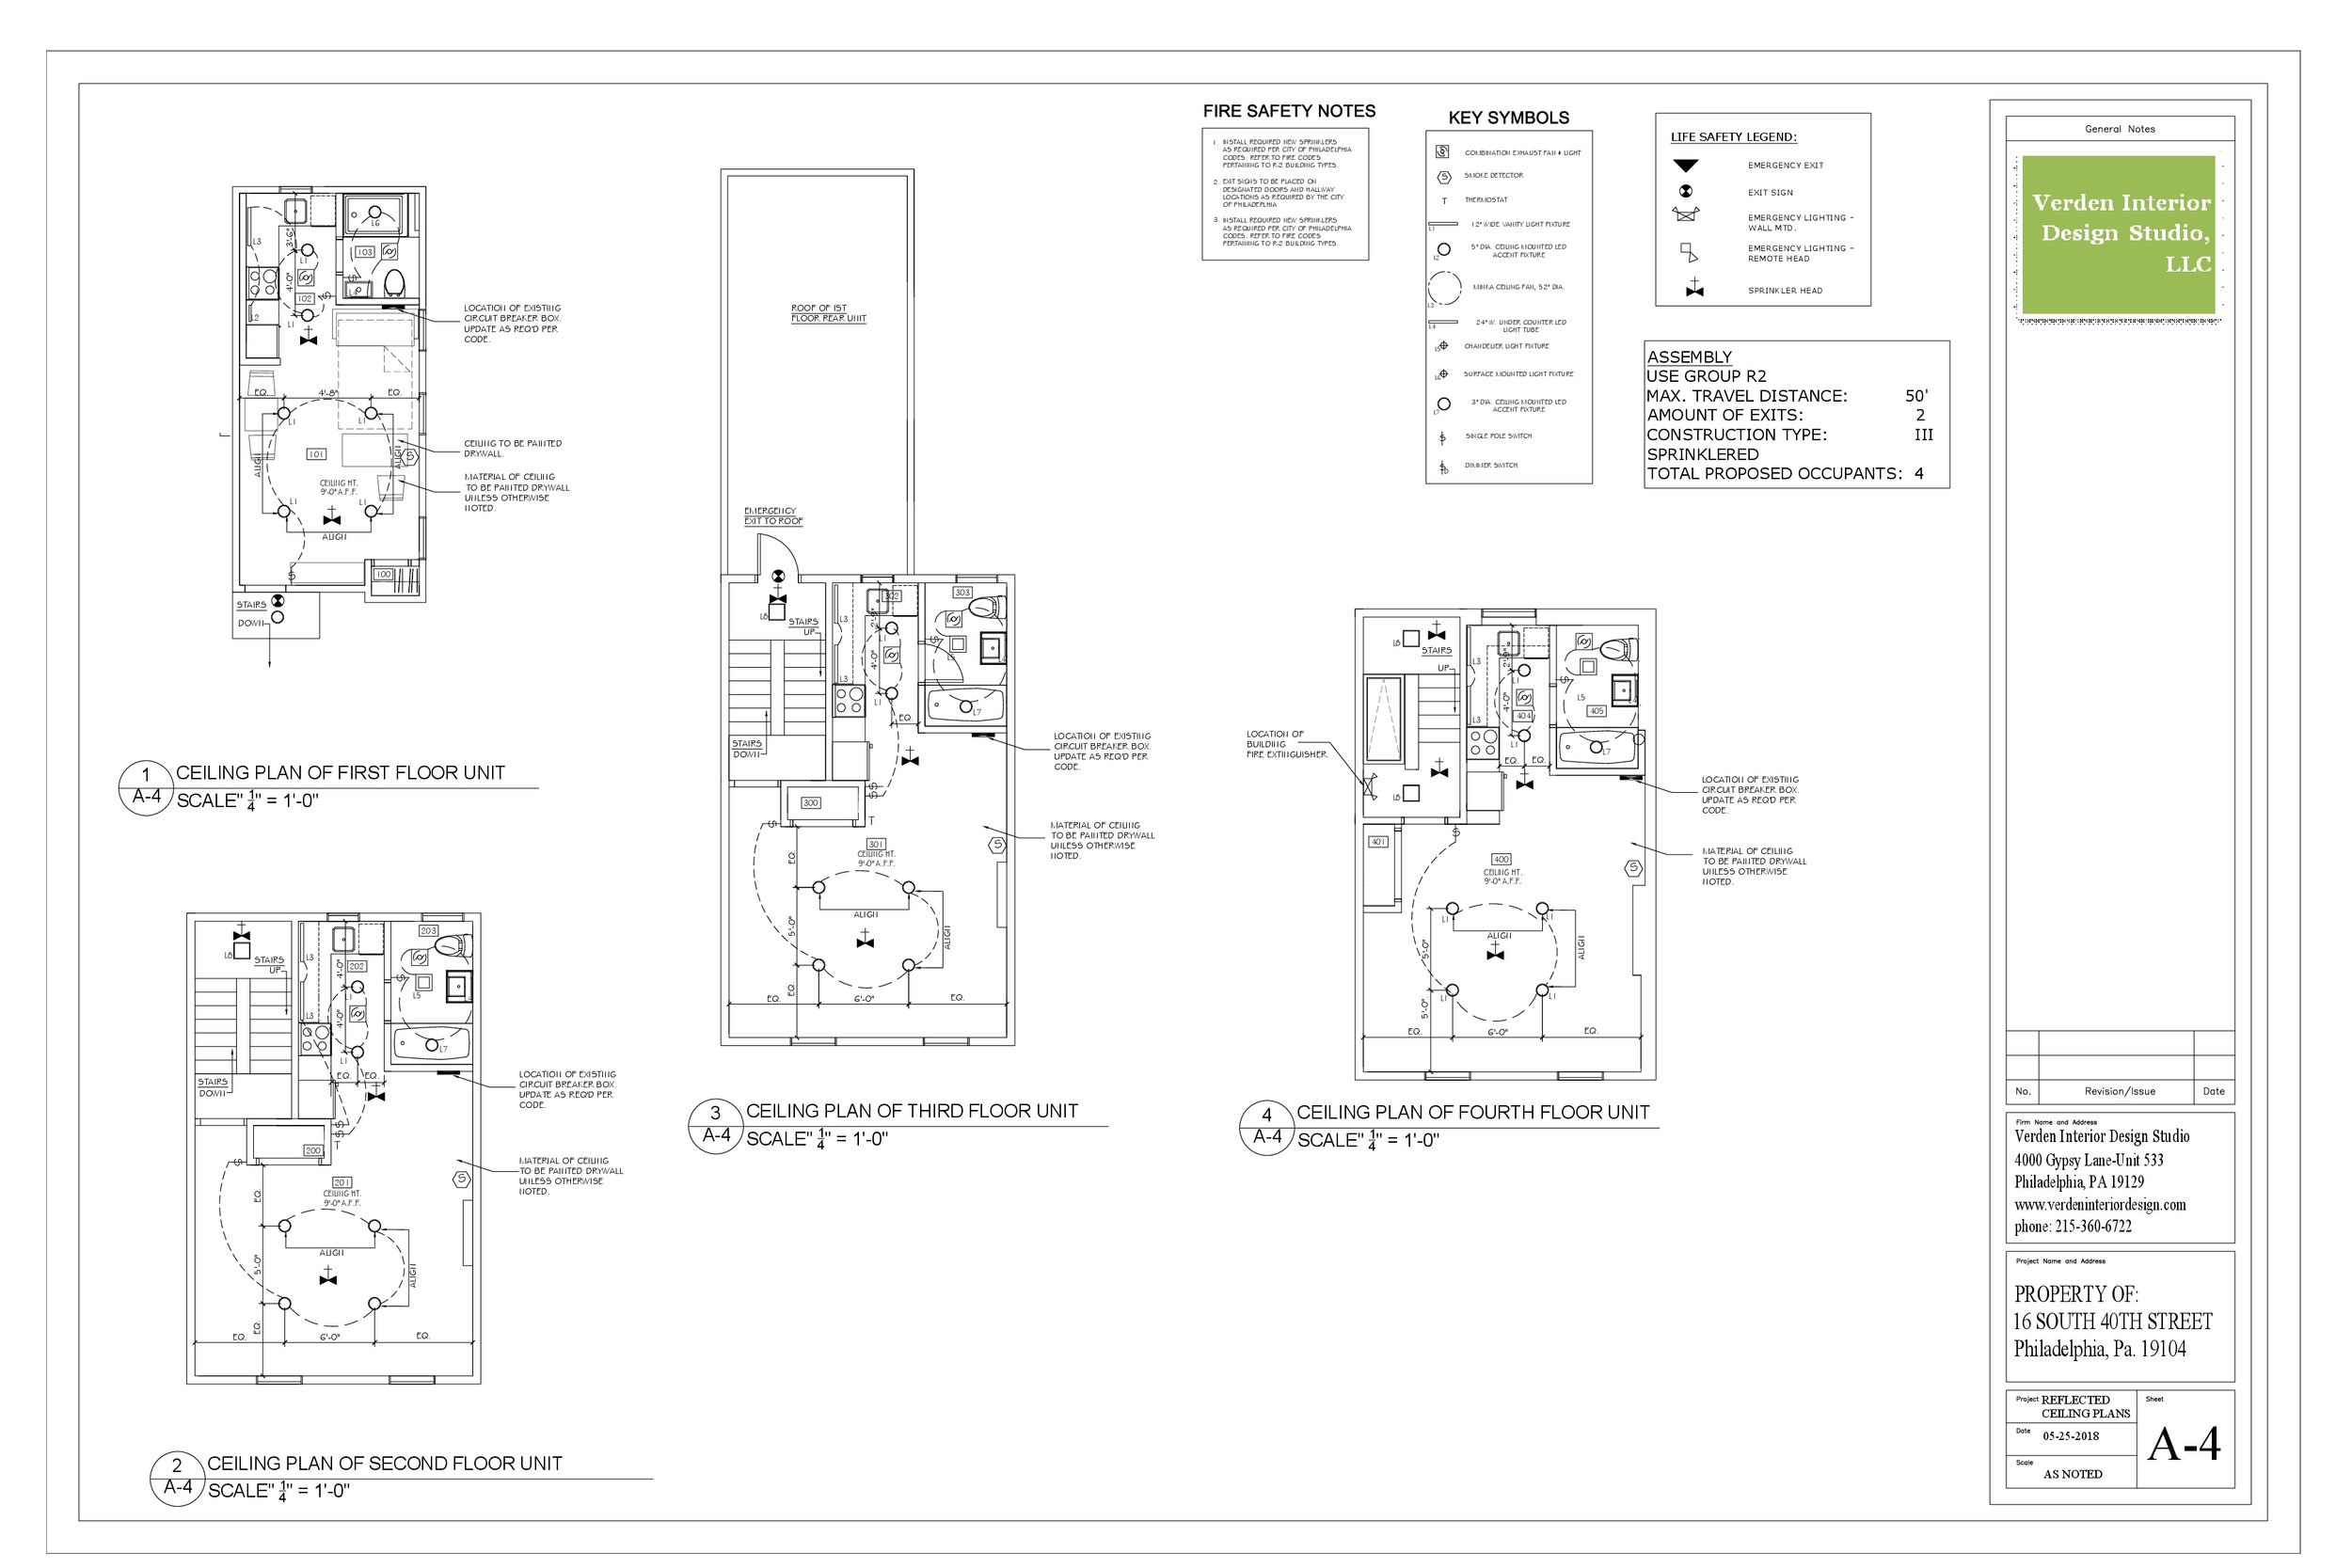 cad space plans_16south40th-A-4.jpg